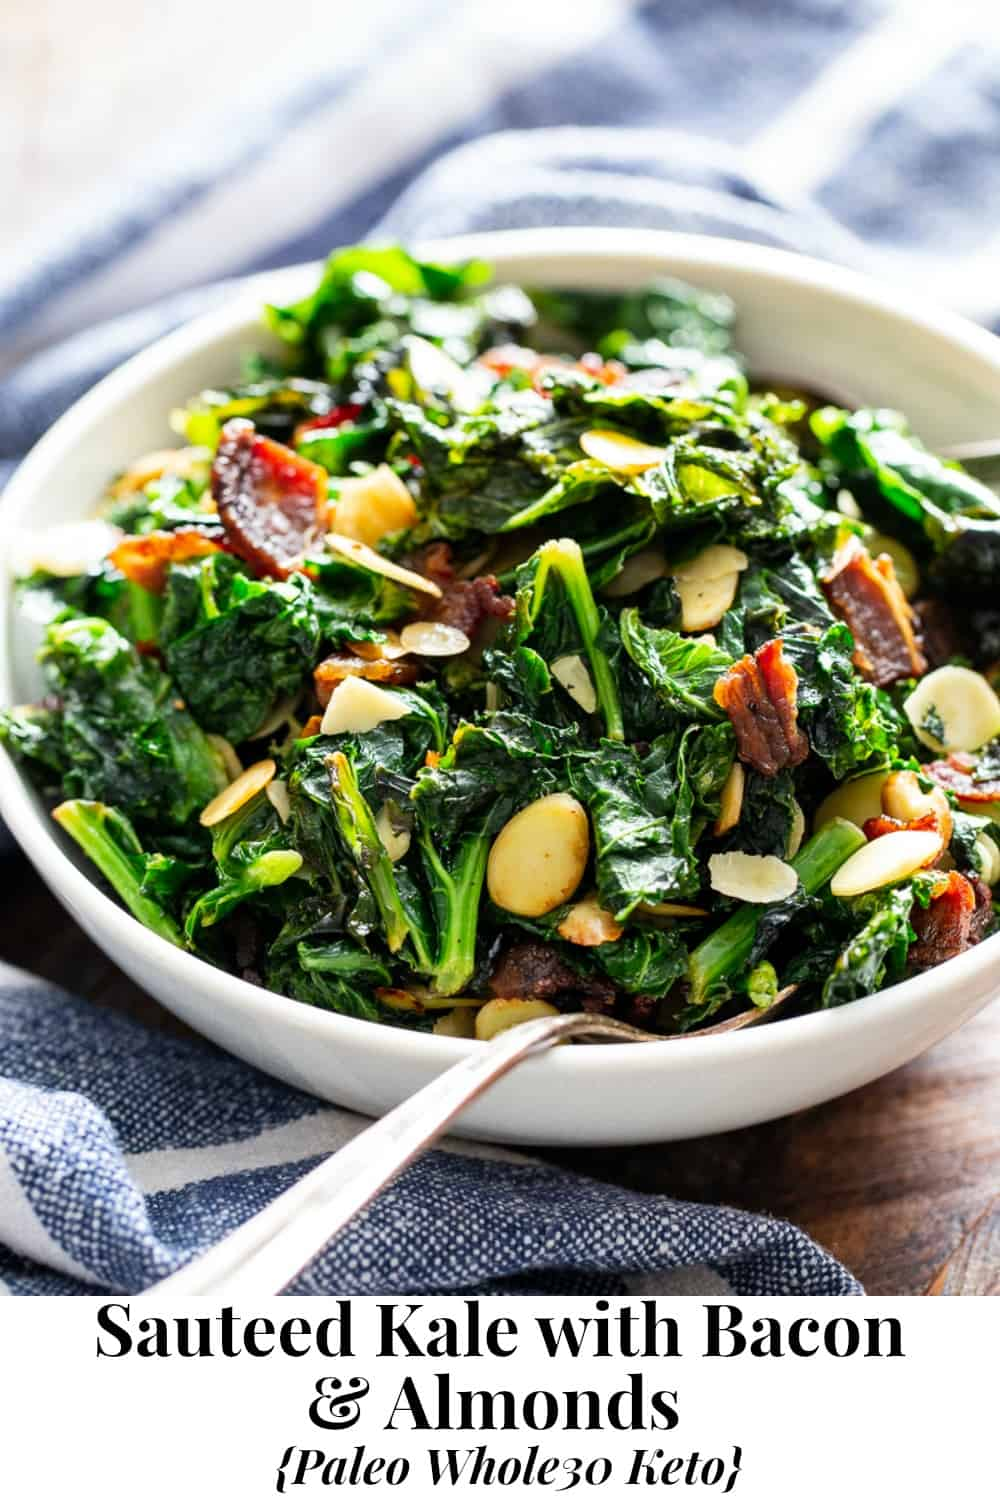 This delicious and simple sautéed kale with bacon and almonds is a savory healthy side dish that you'll want on repeat!  It's paleo and Whole30 friendly, keto, and Low FODMAP.  Serve it with any main course to add lots of flavor and nutrients to your meal. #keto #cleaneating #paleo #whole30 #lowfodmap